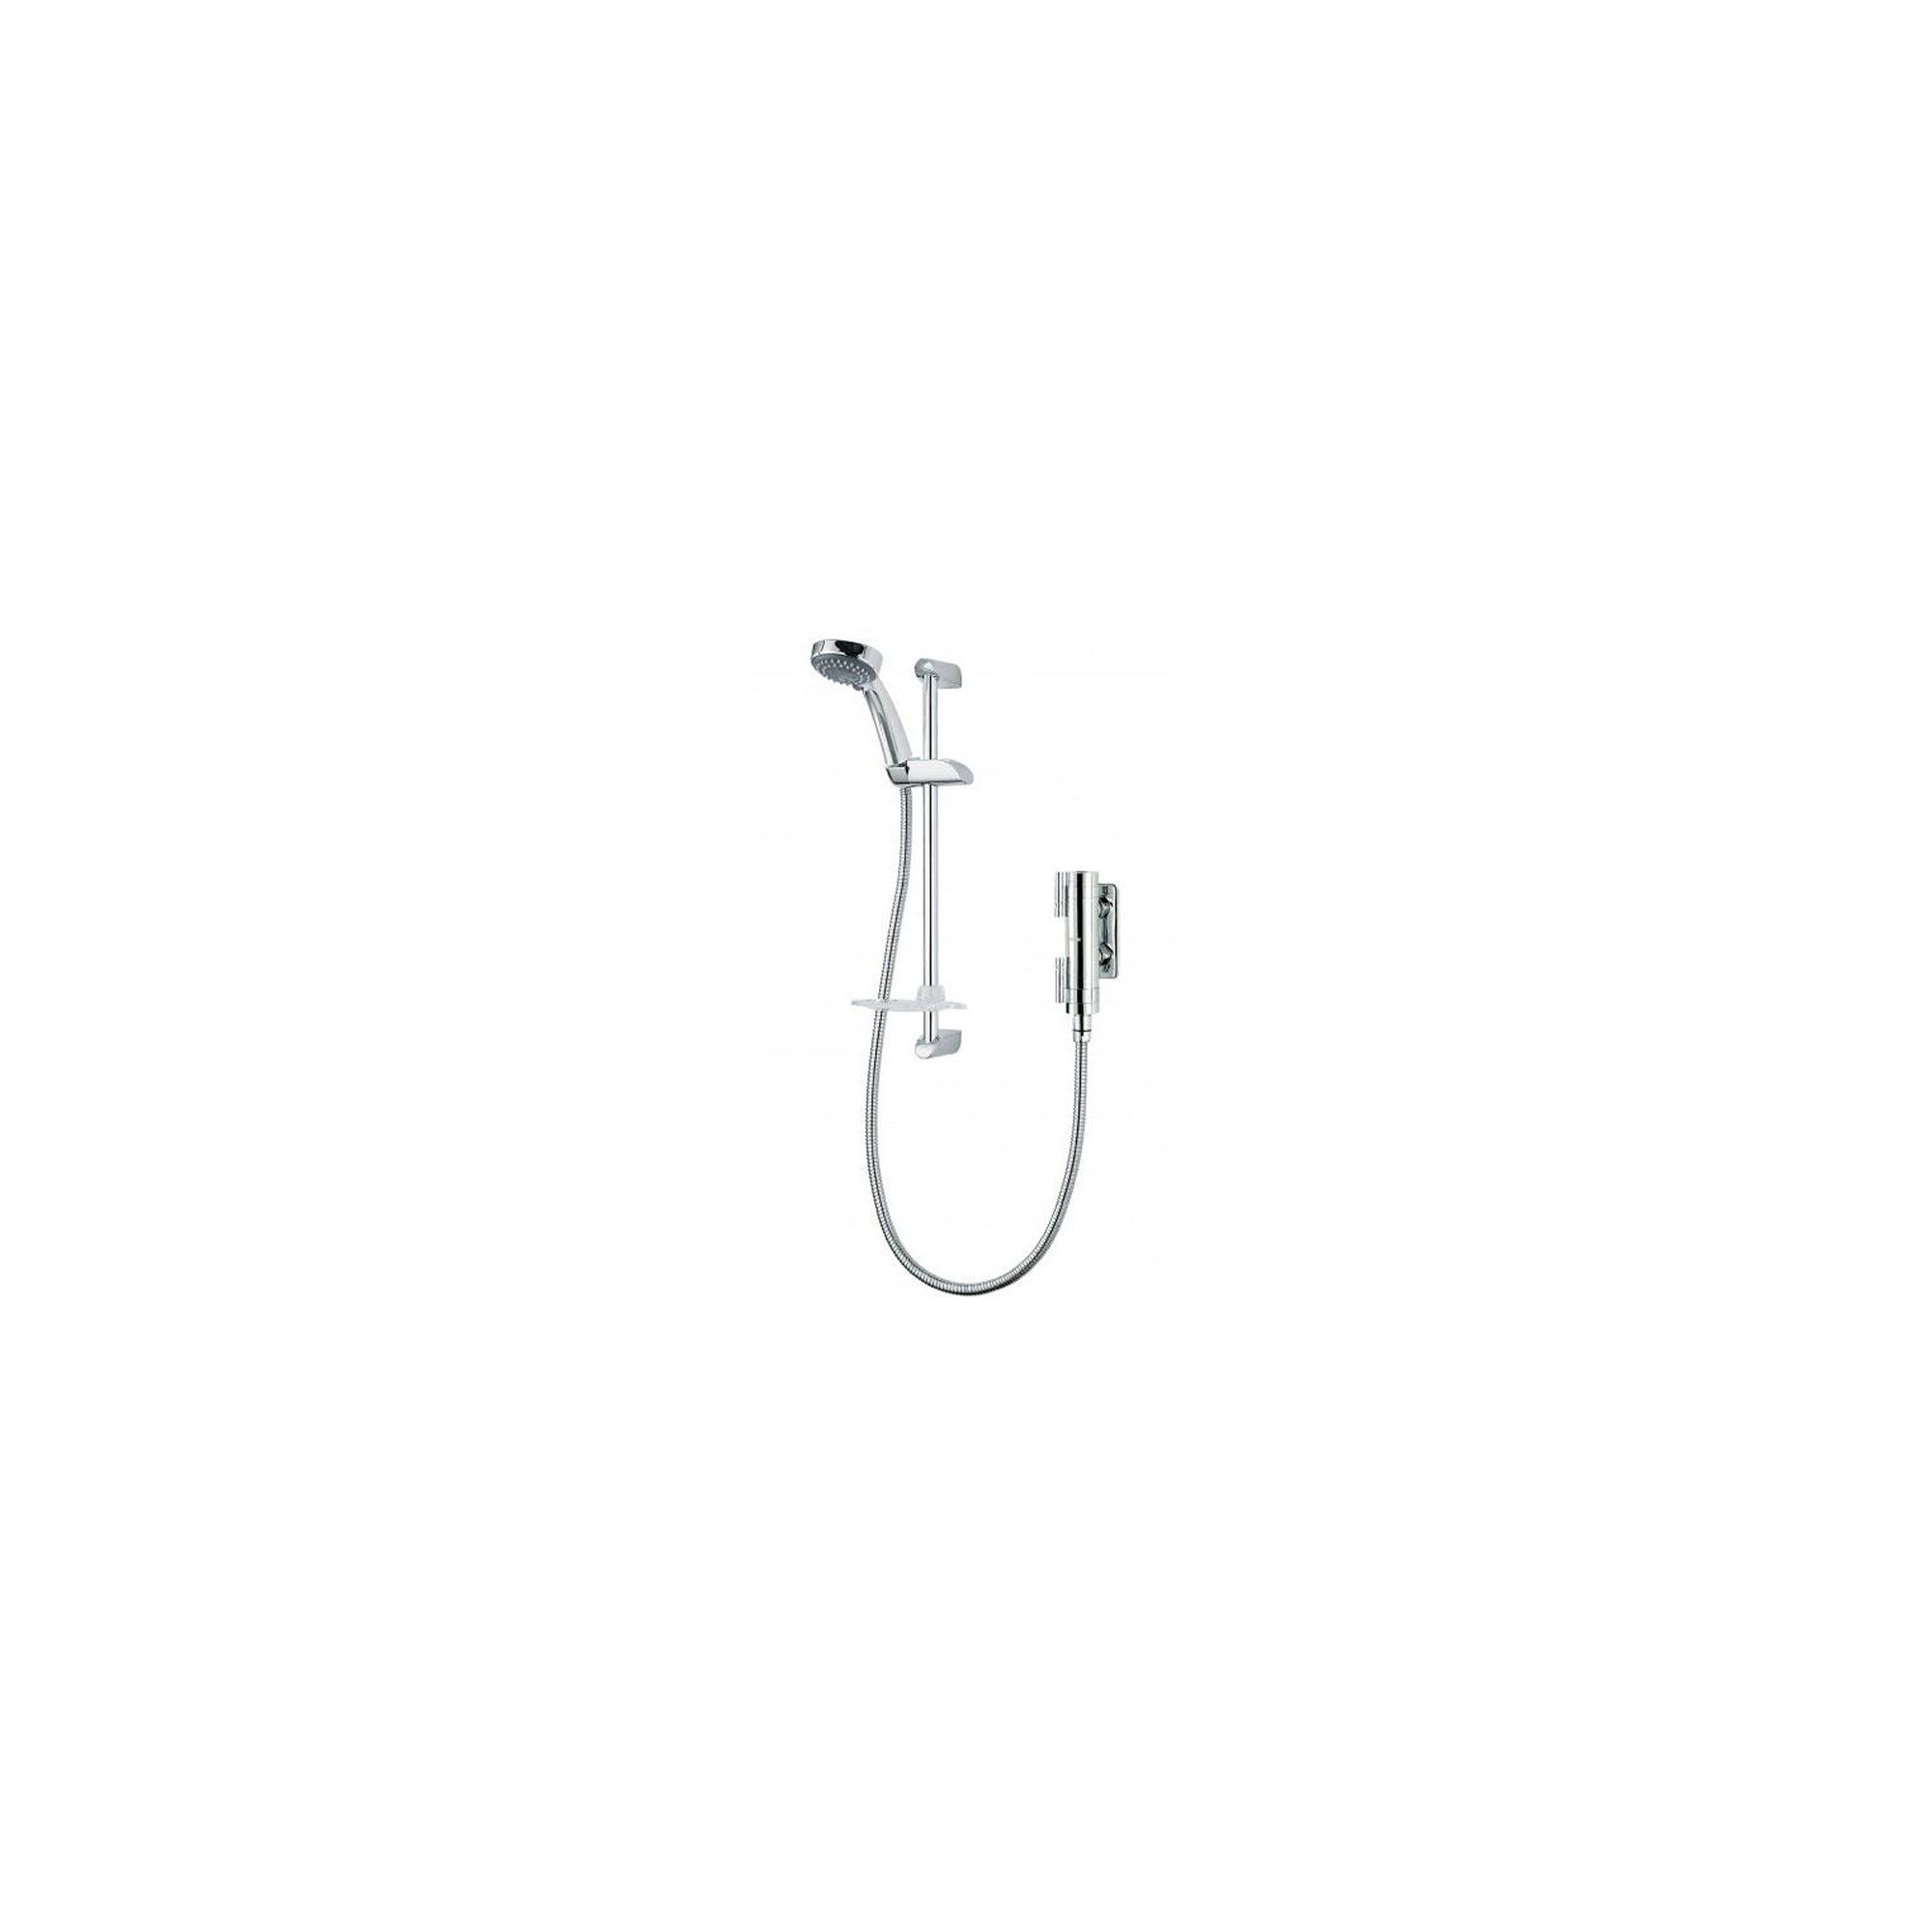 Triton Thames Vertical Thermostatic Bar Mixer Shower Chrome at Tesco Direct